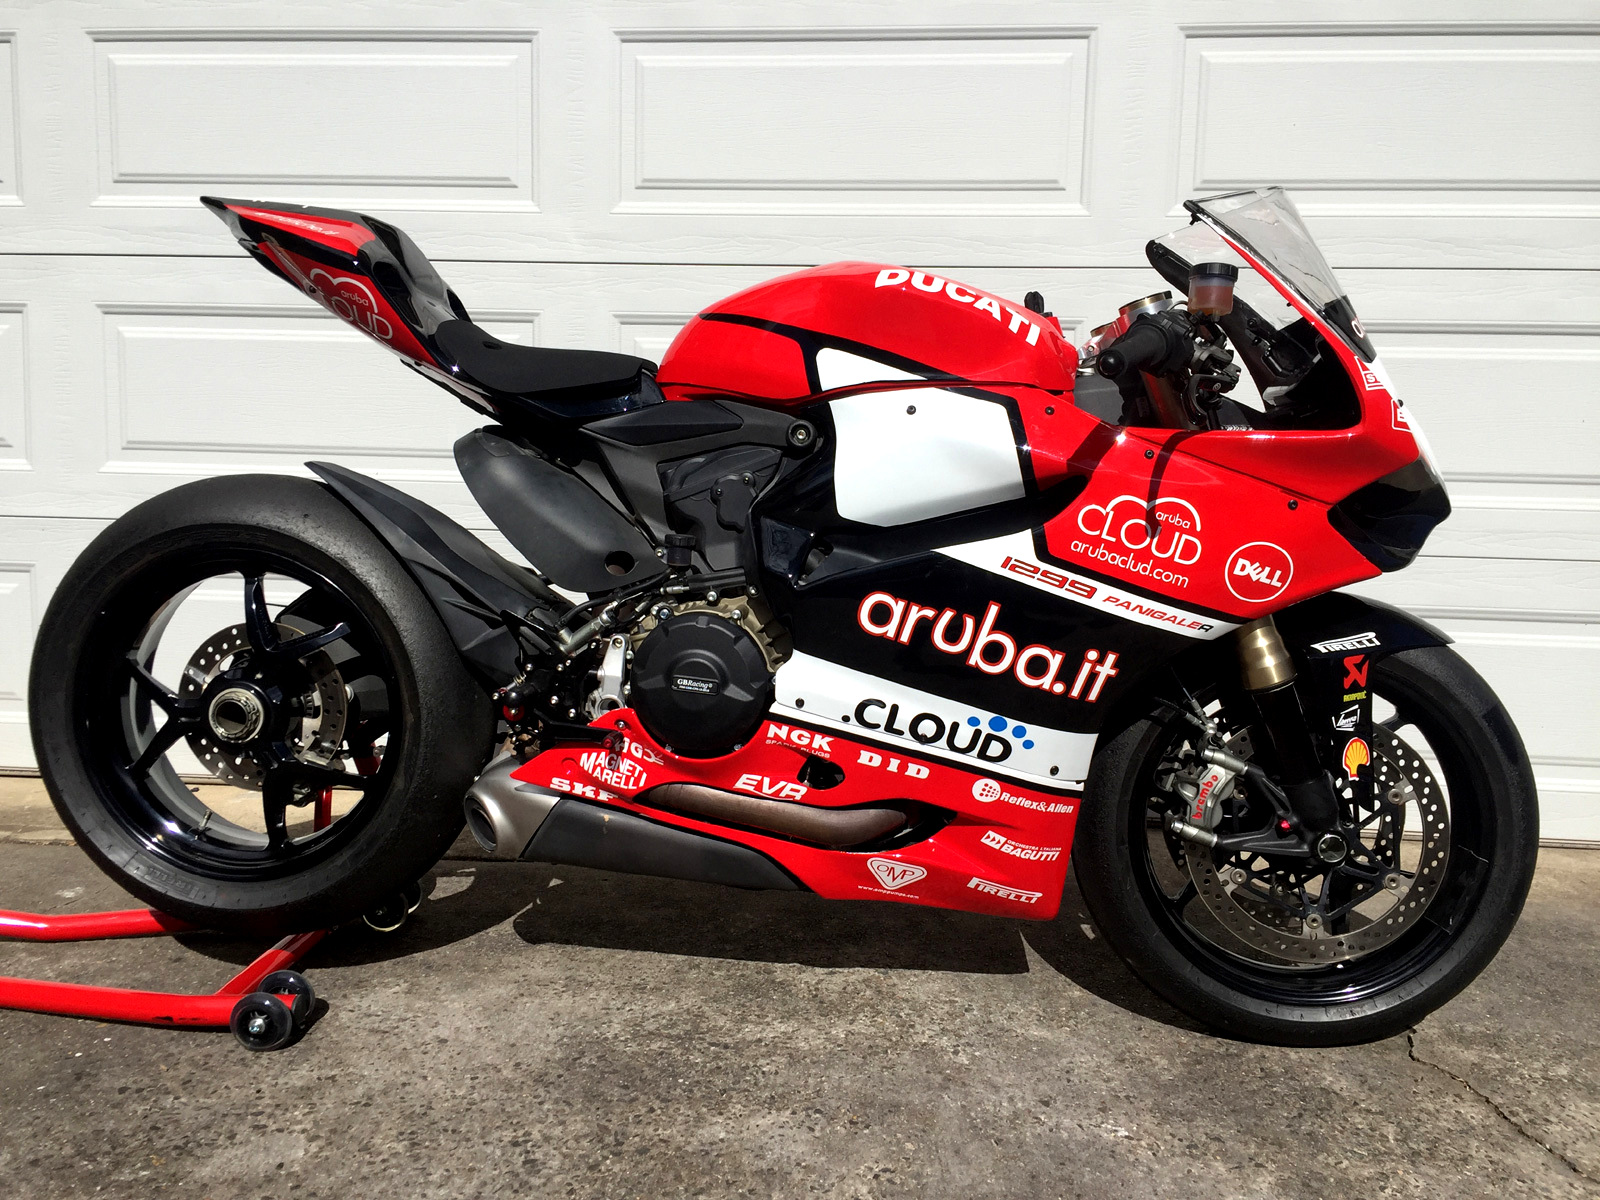 Panigale 1299 Track Bike Sold